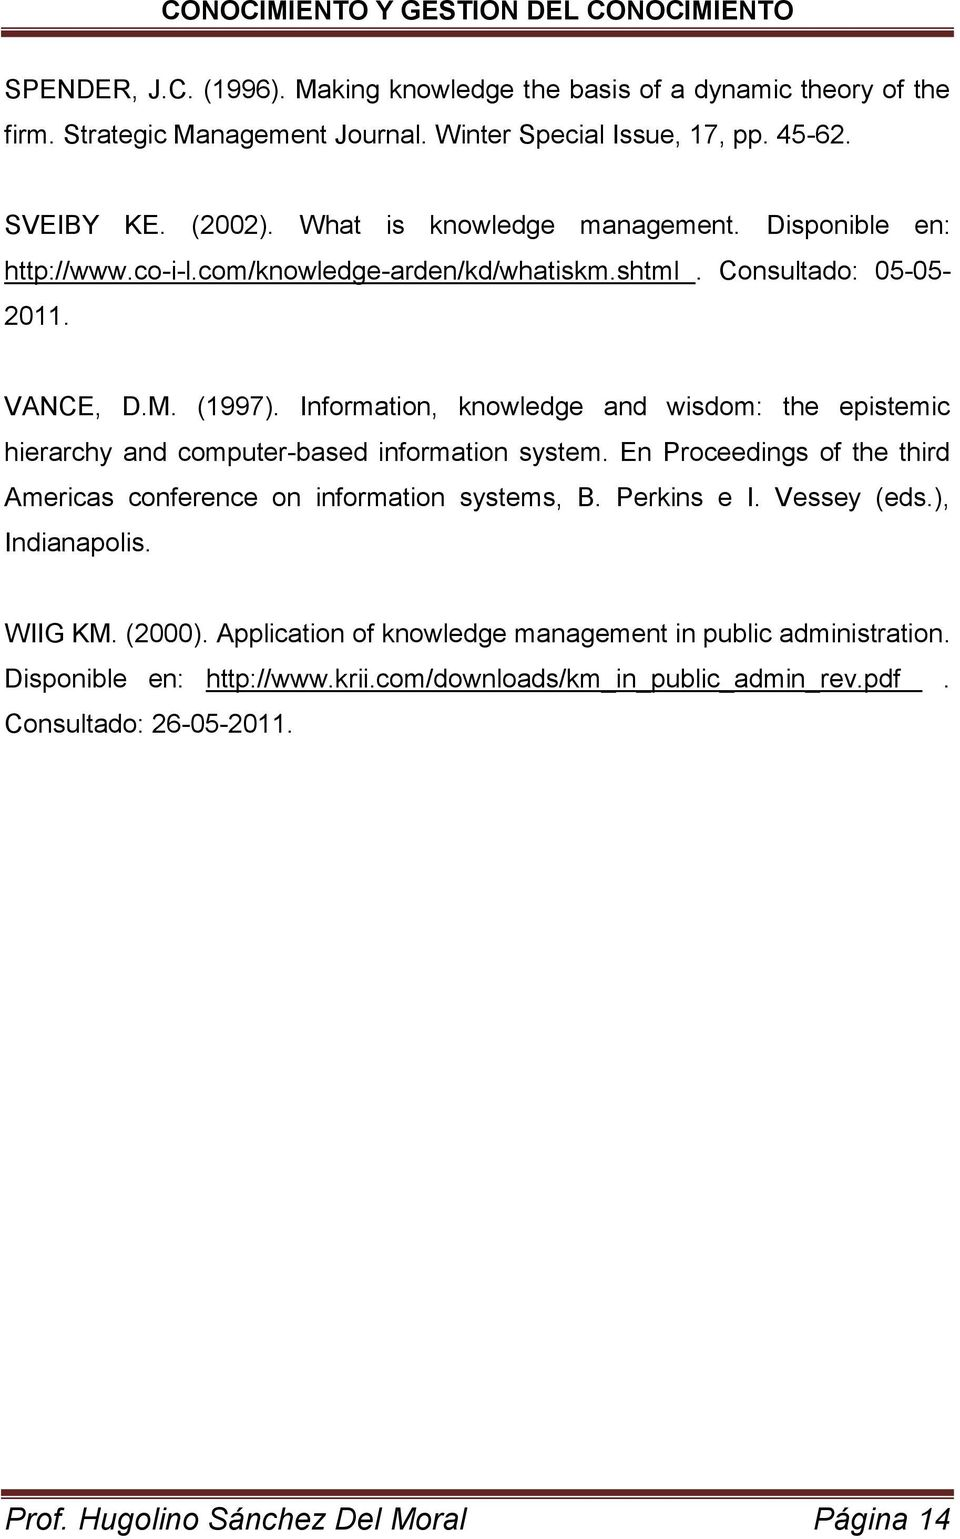 Information, knowledge and wisdom: the epistemic hierarchy and computer-based information system. En Proceedings of the third Americas conference on information systems, B. Perkins e I.